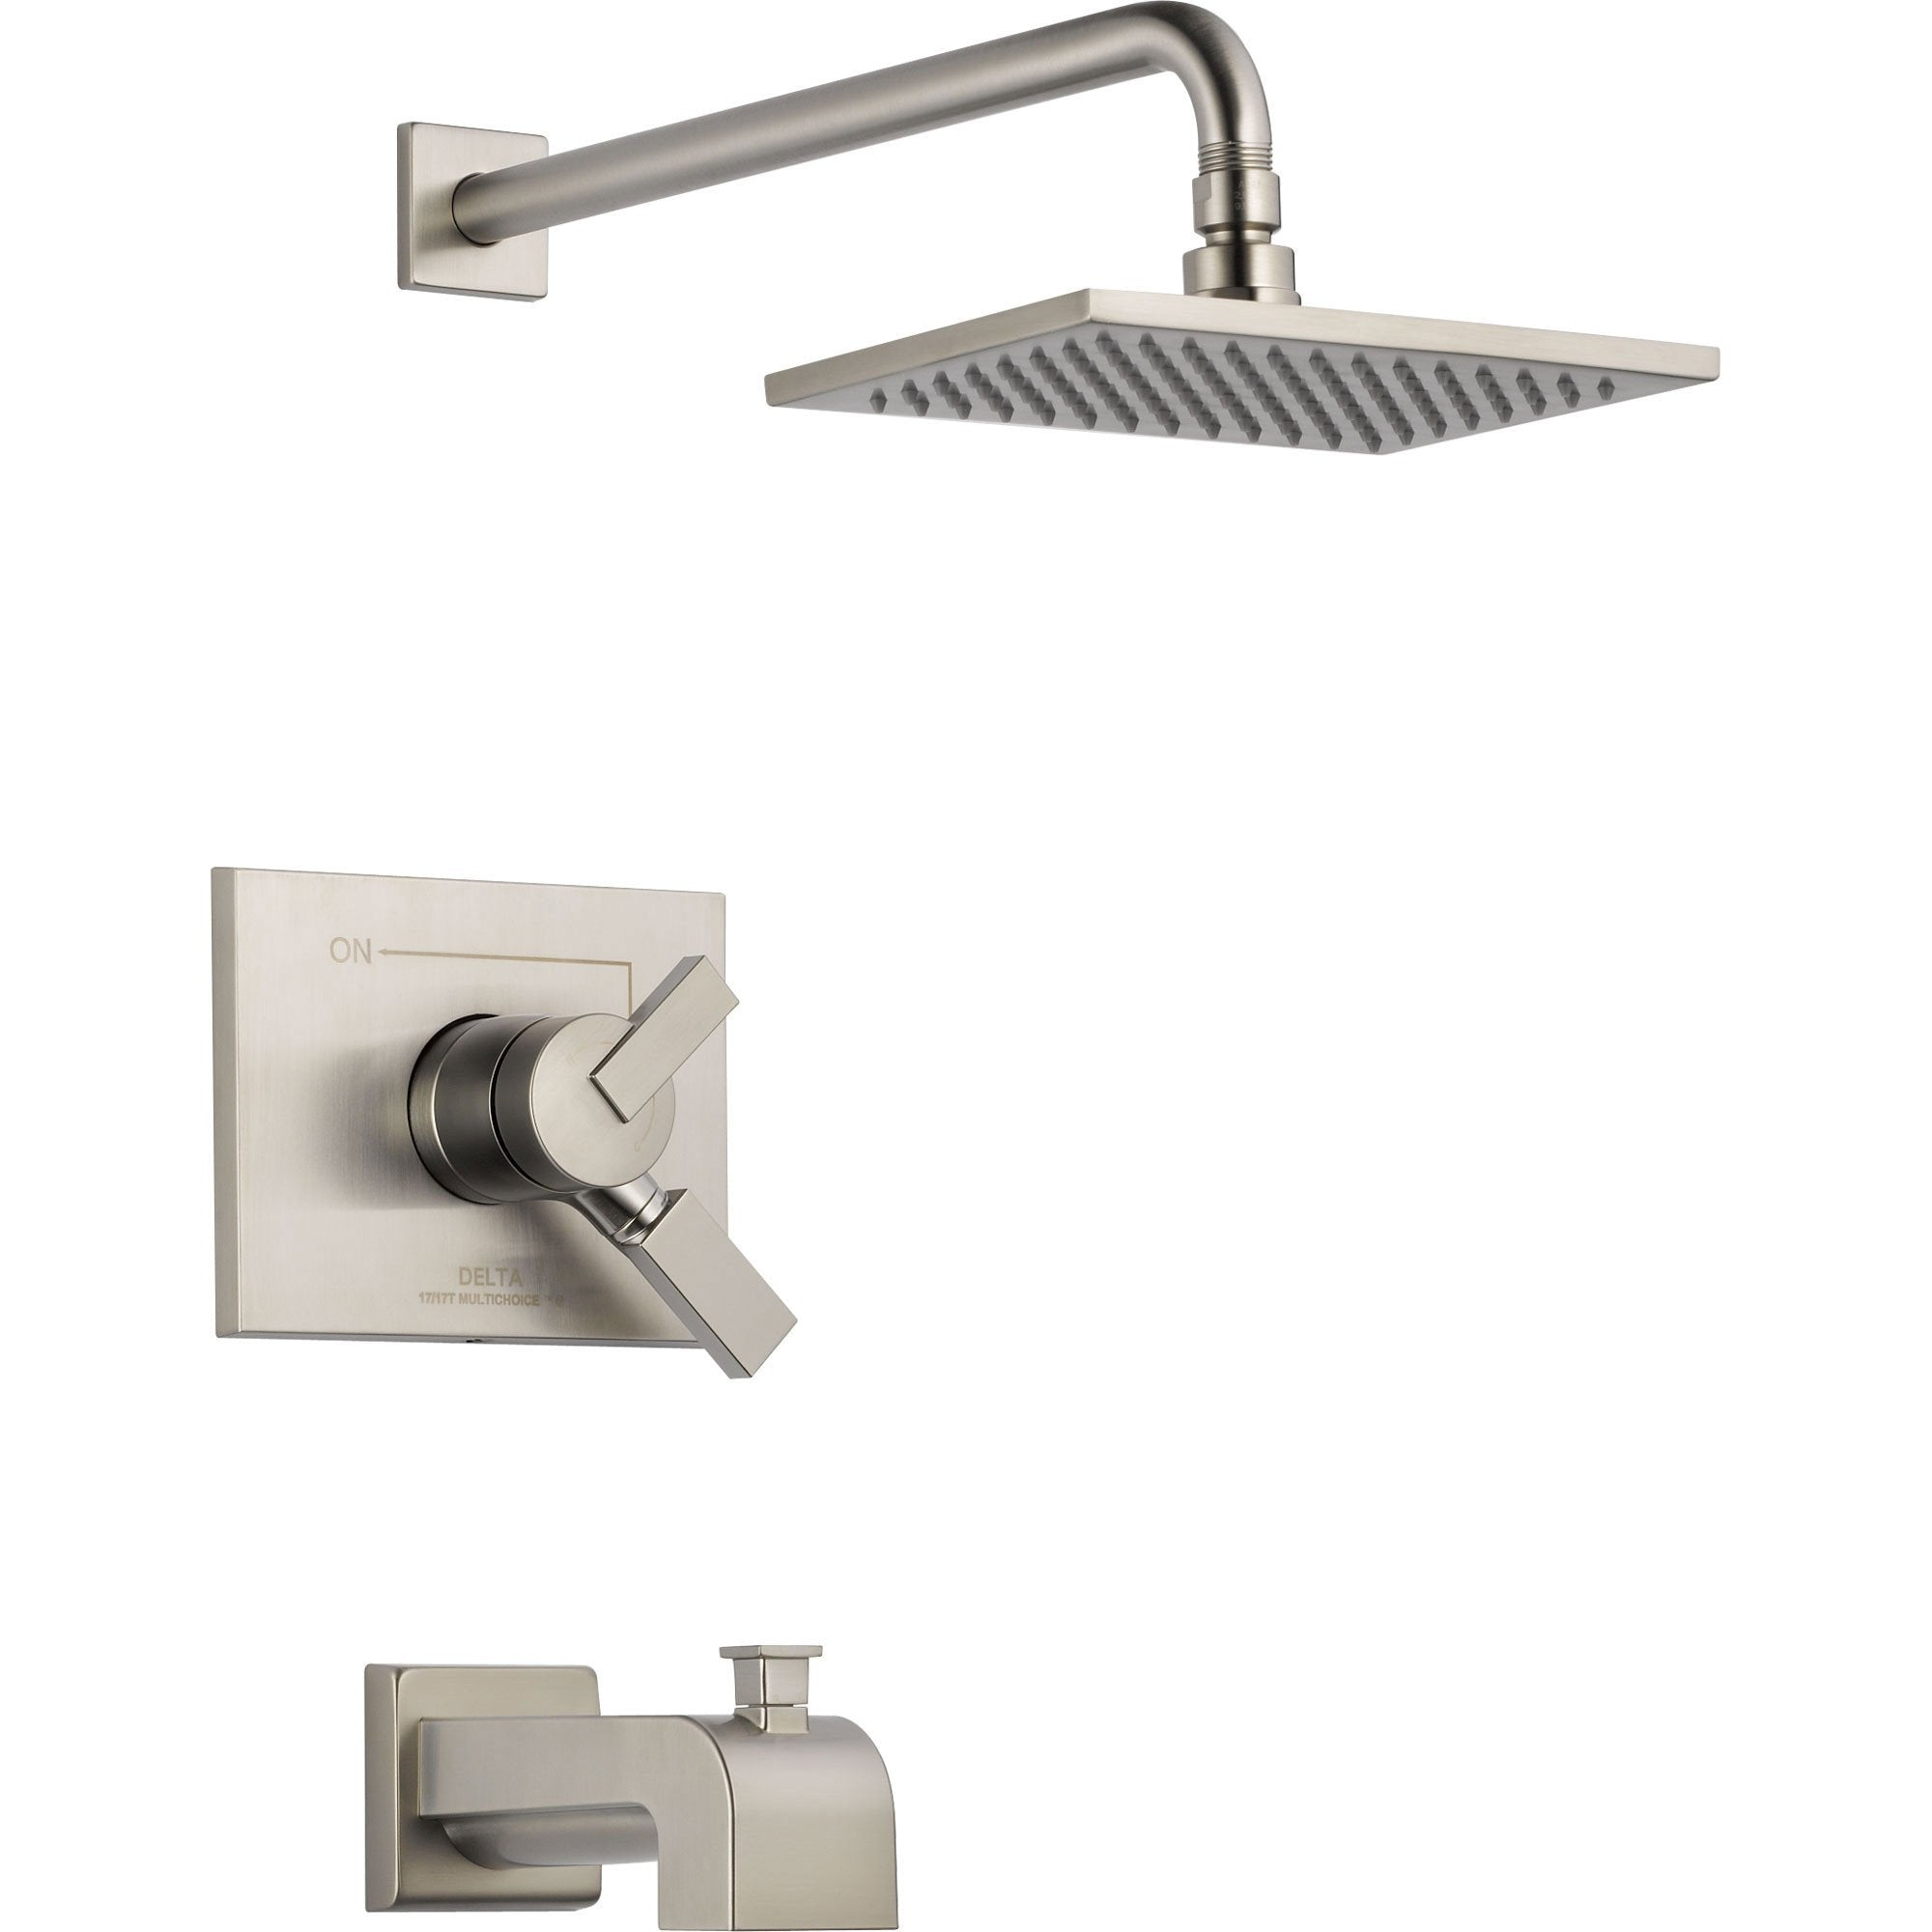 Delta Vero Stainless Steel Finish Two Control Tub and Shower with Valve D384V